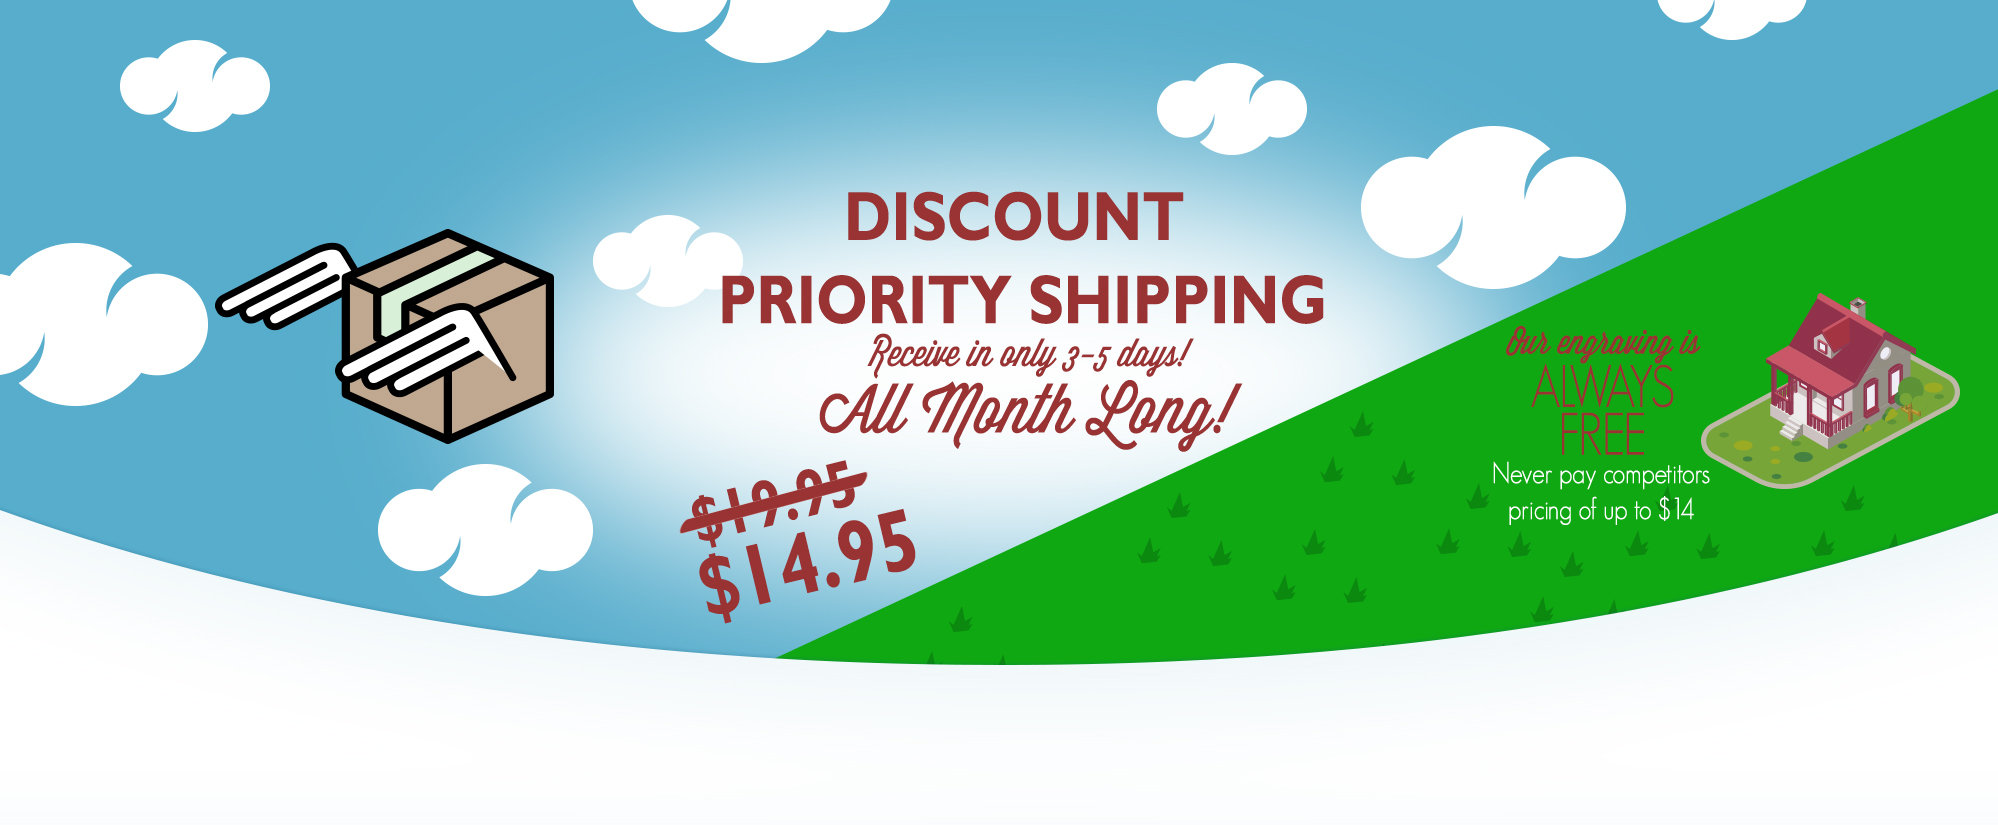 Flash Sale- Discount Priority Shipping